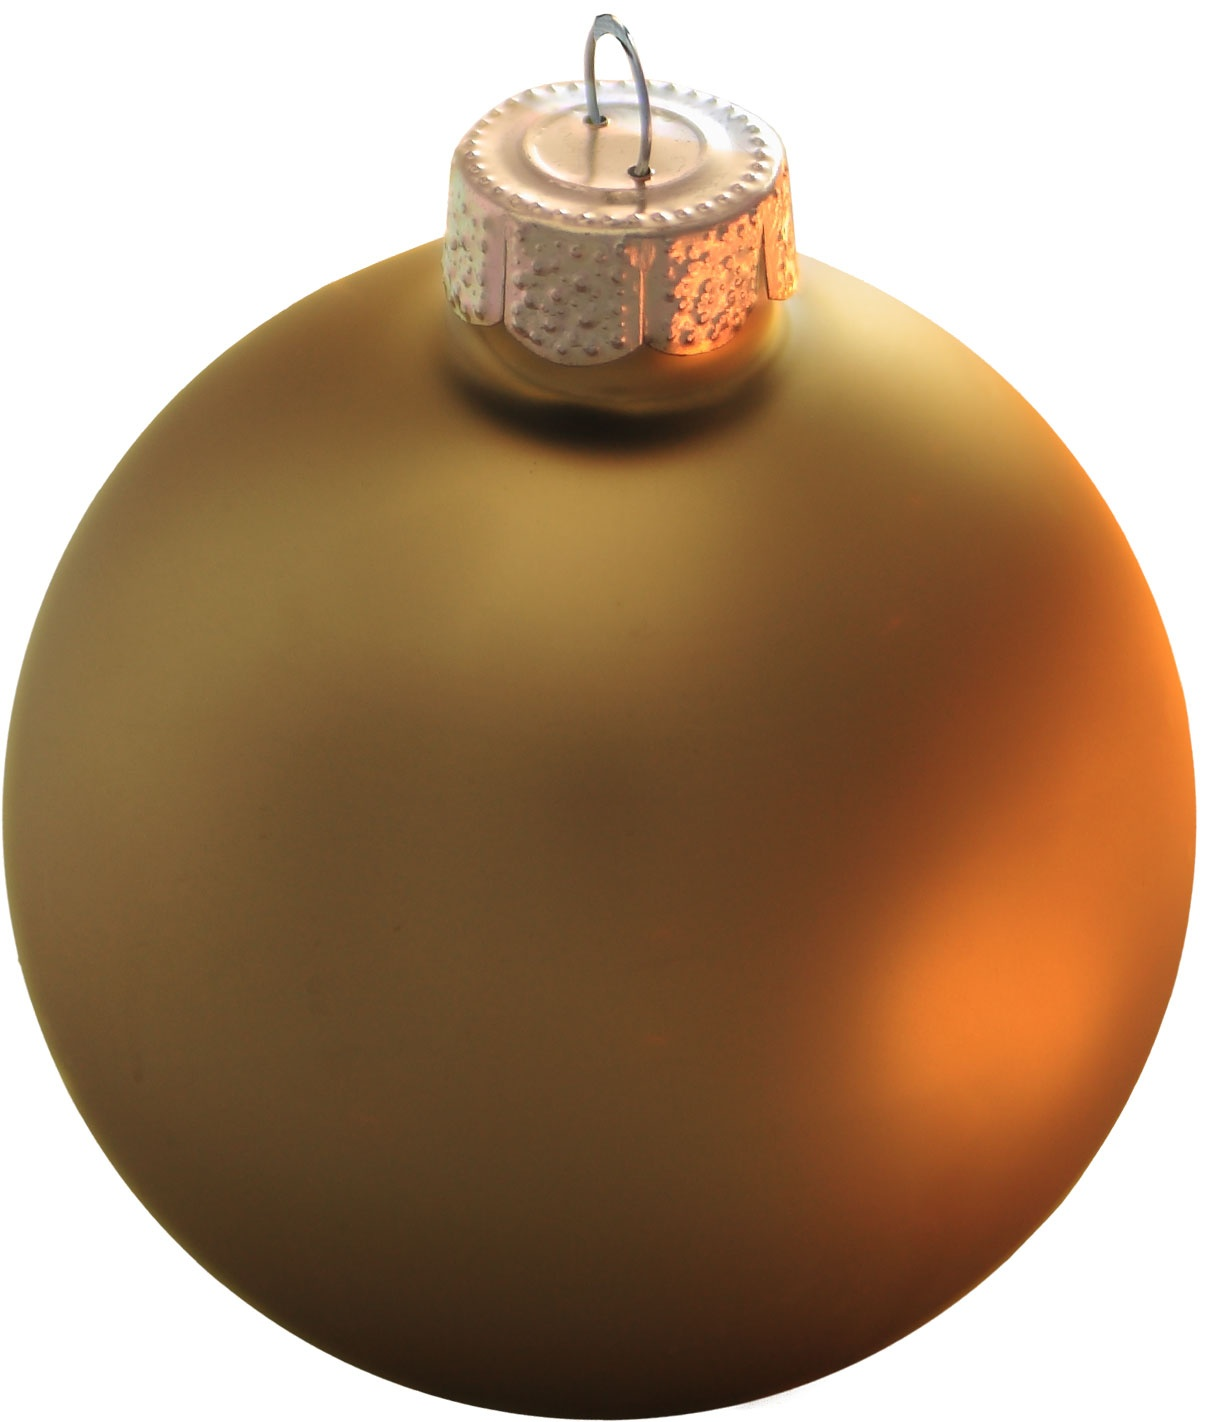 Christmas decorations 6 antique gold ball ornament for Christmas tree balls